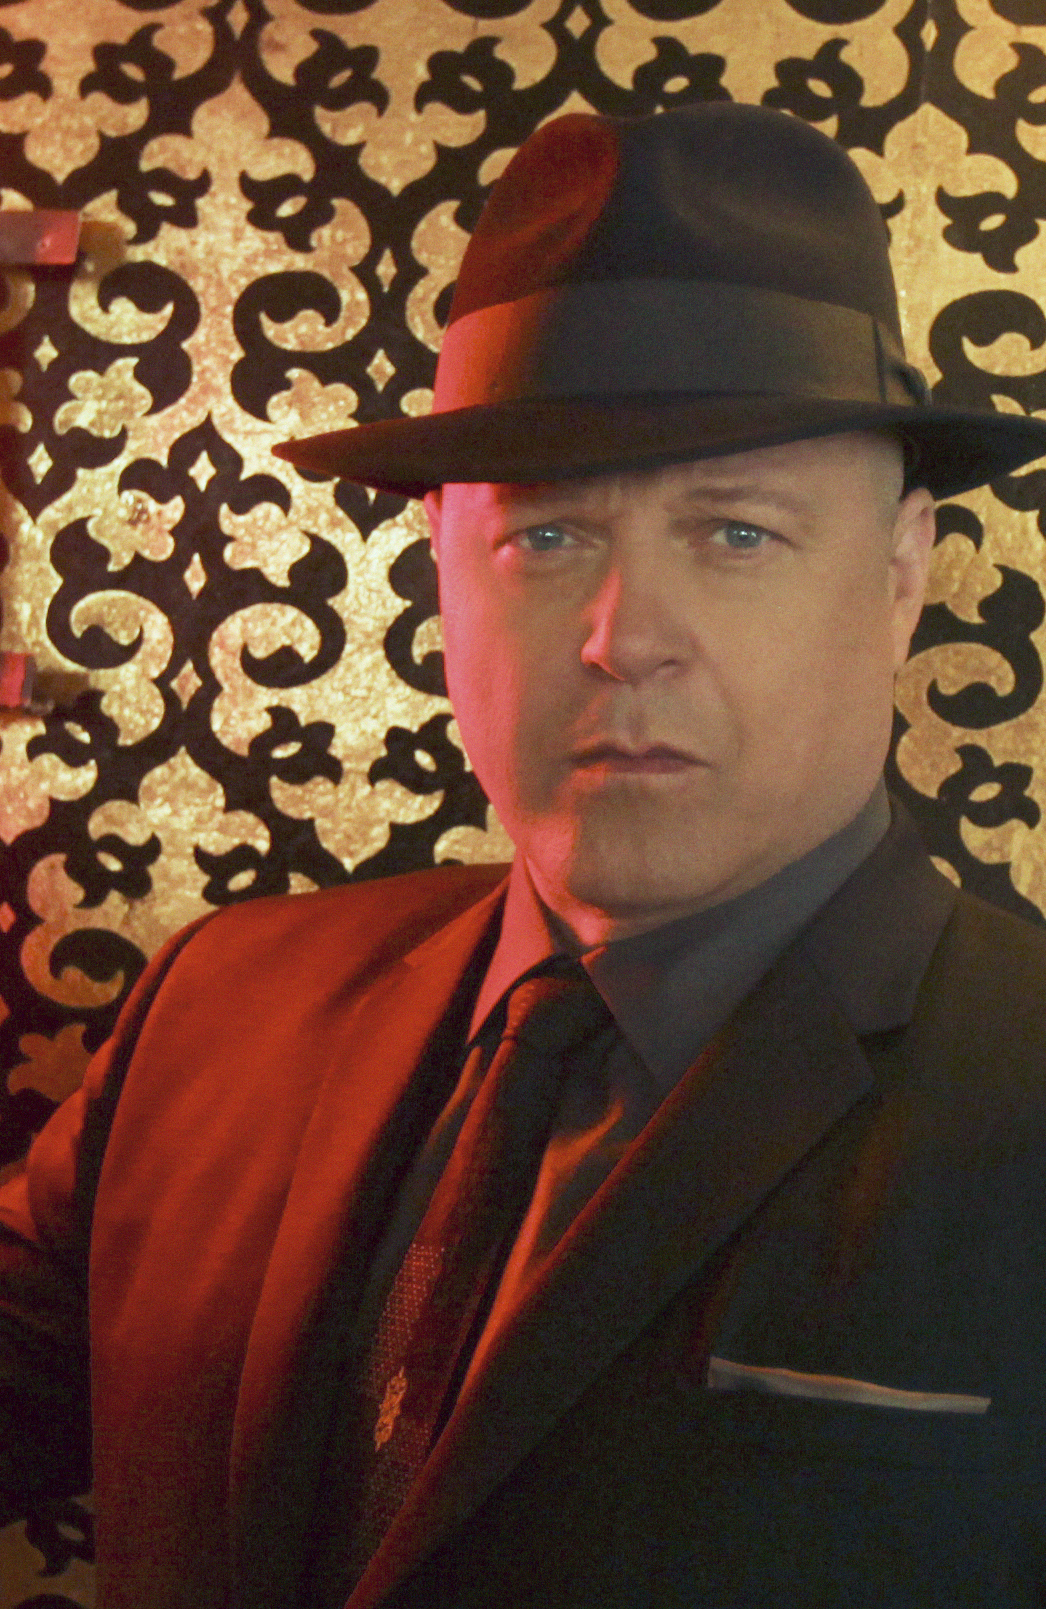 Vegas star Michael Chiklis presents at the ACMs